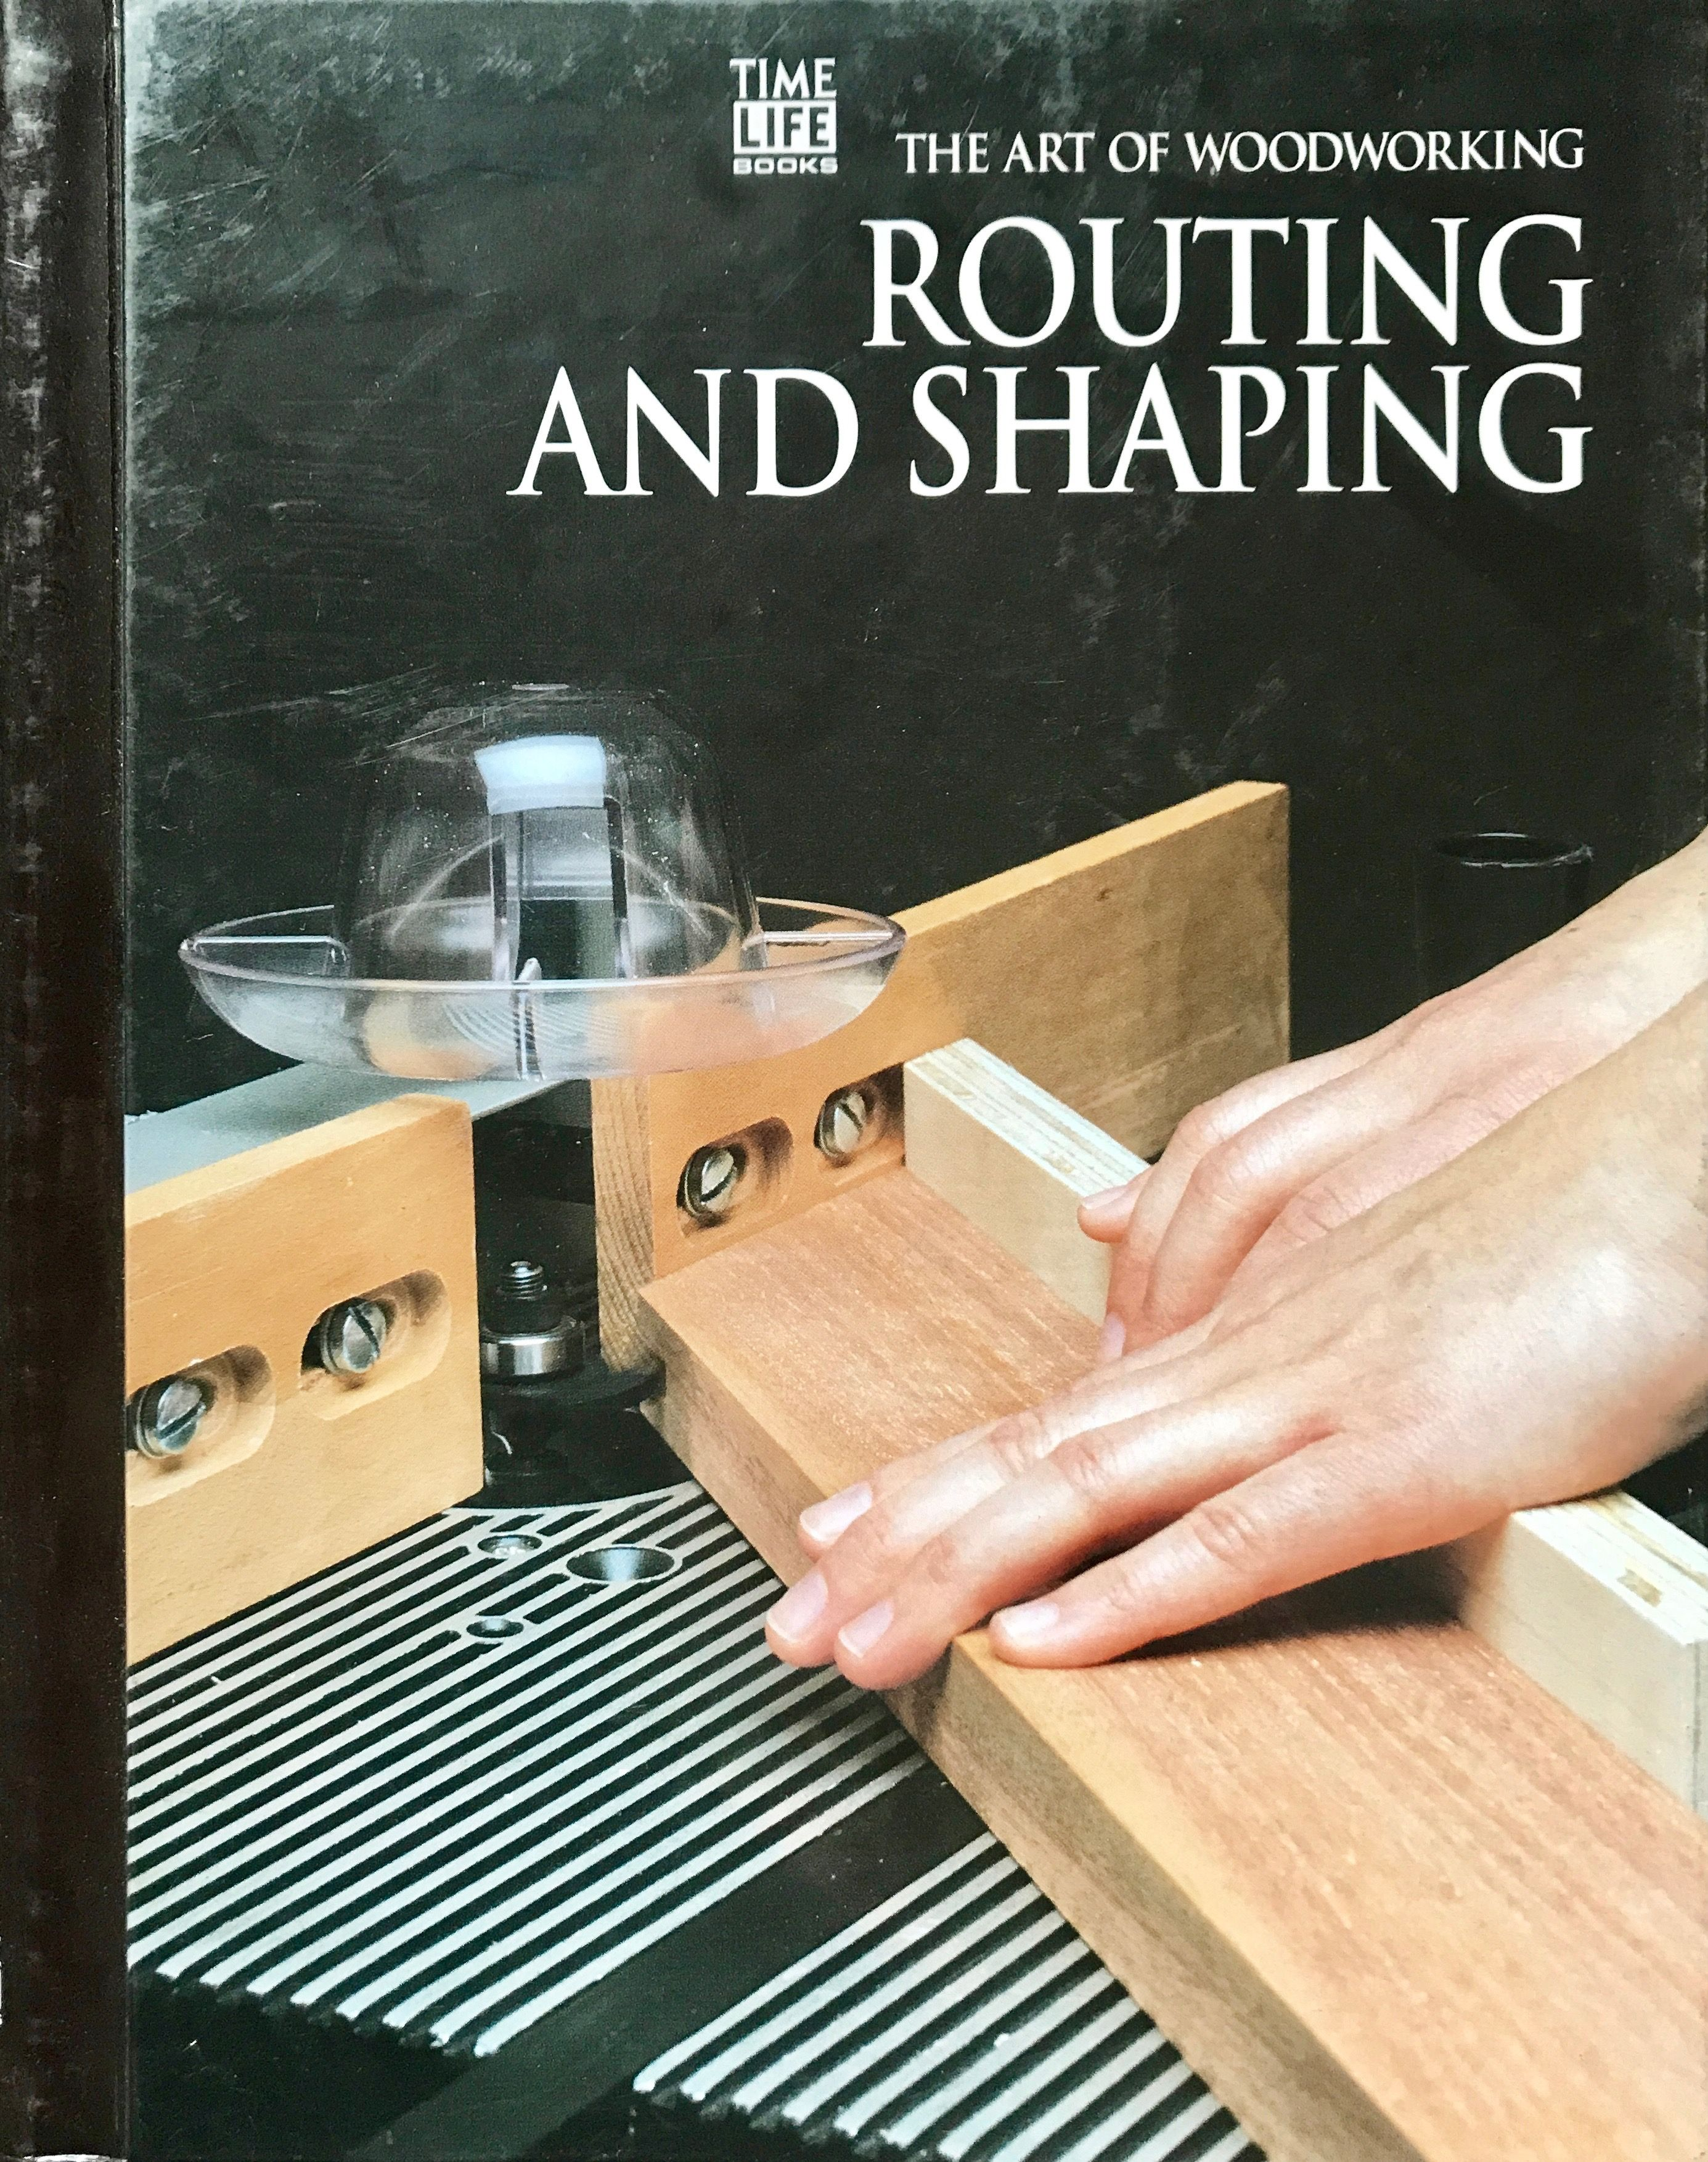 Routing And Shaping By Time Life Books 1993 Woodworking Books Woodworking Blueprints Woodworking